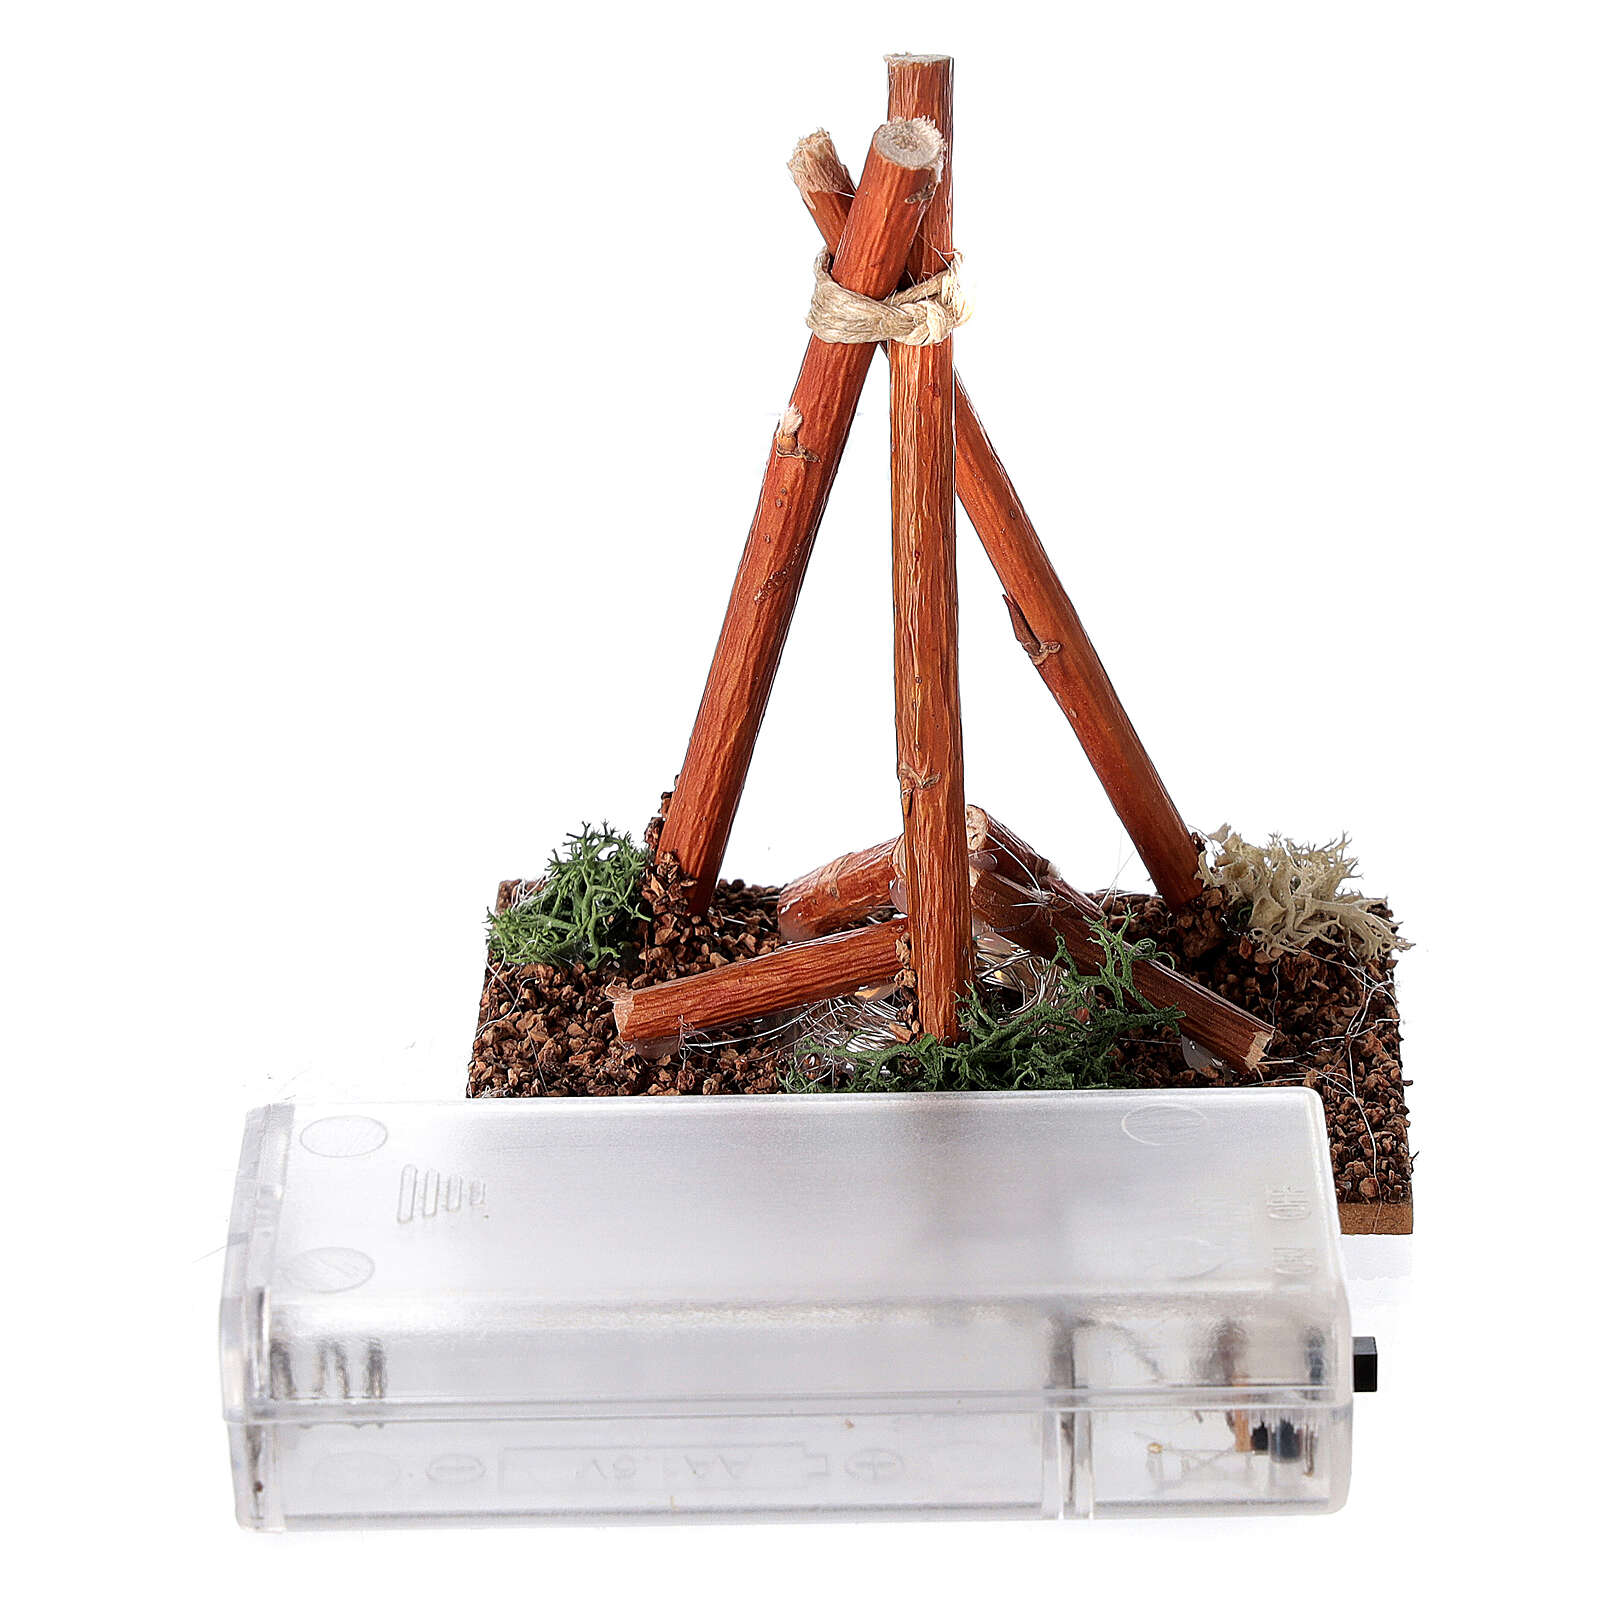 Fire with flame effect for Nativity Scene with 8-10 cm figurines 4